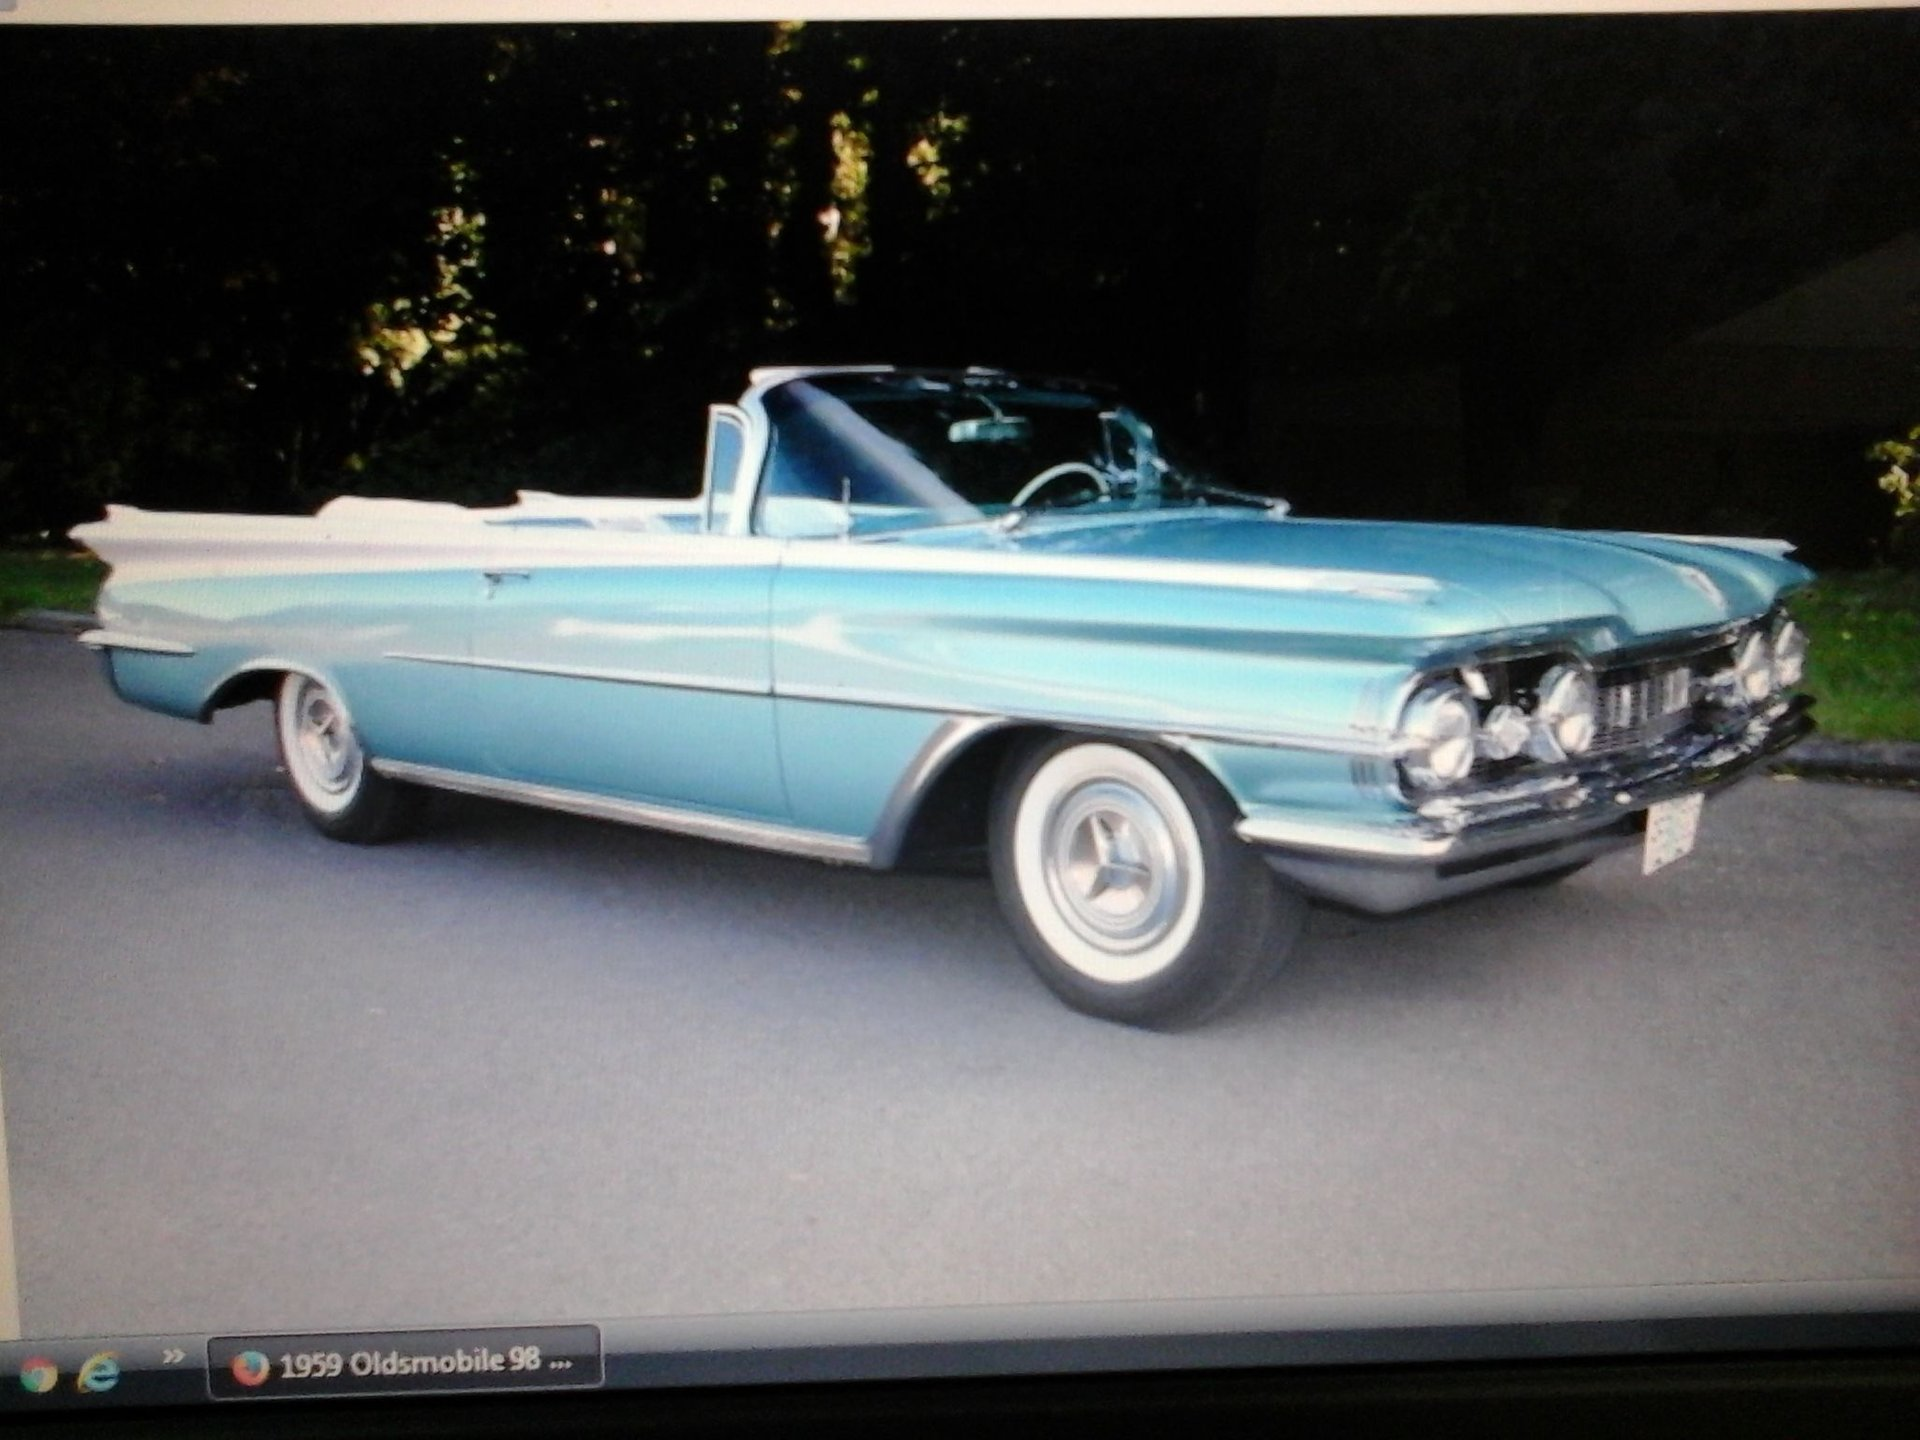 Auction 1959 Oldsmobile 98